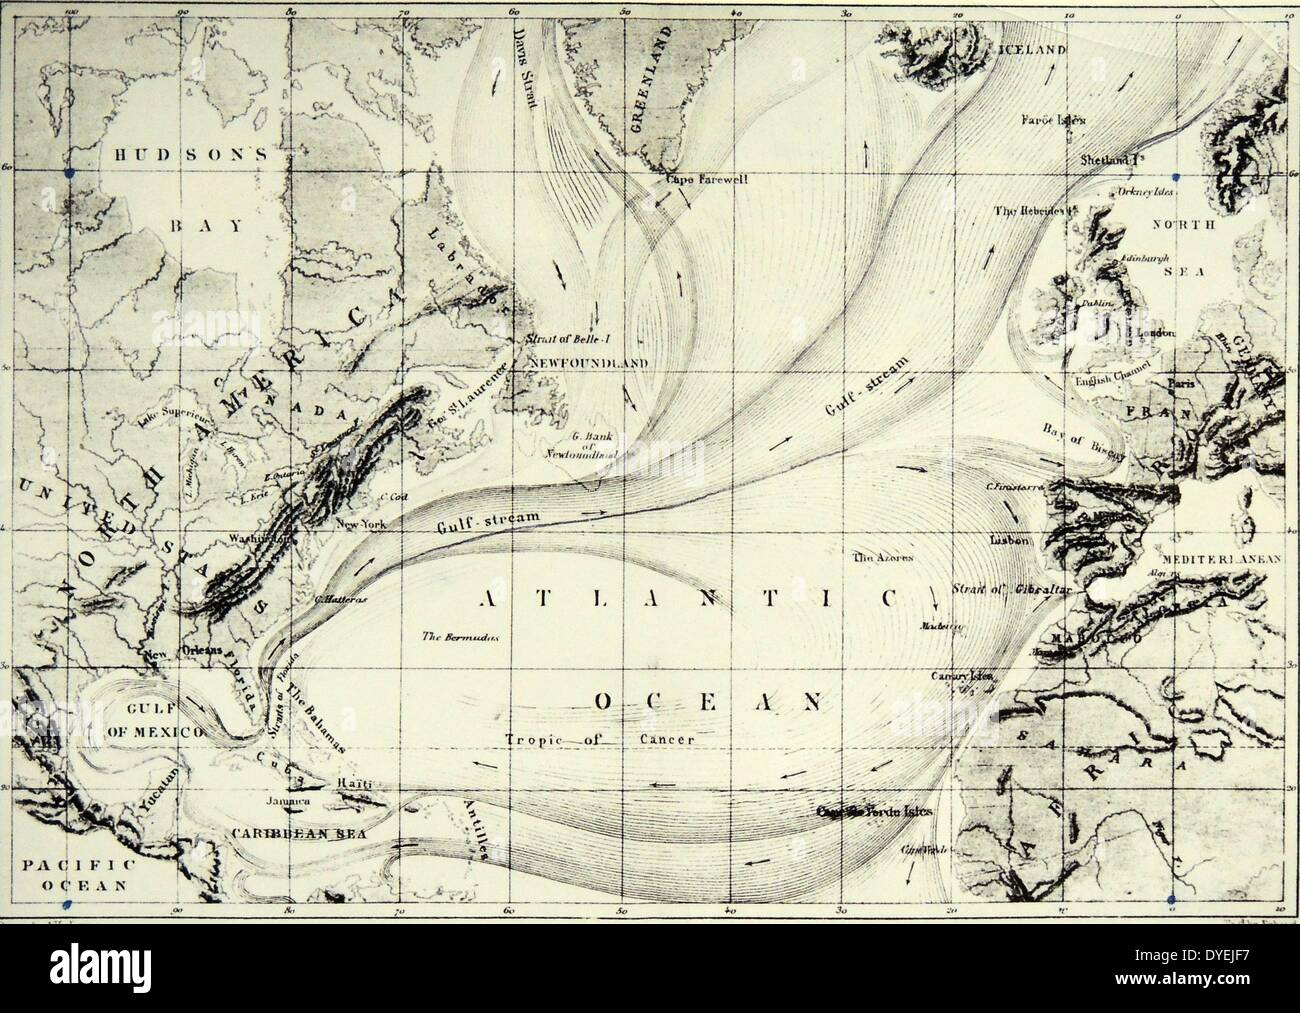 Atlantic Ocean Map Stock Photos  Atlantic Ocean Map Stock Images